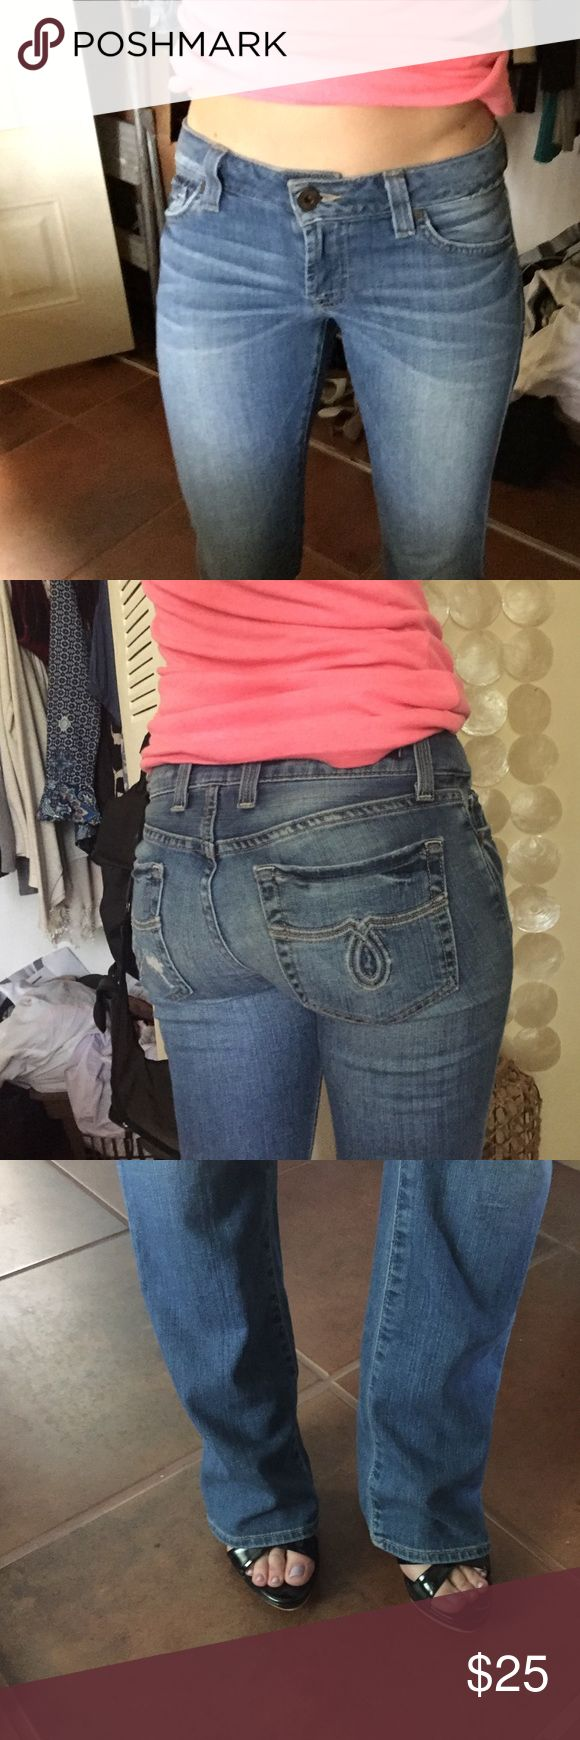 Lucky jeans Worn a few time like brand new! Lucky Brand Jeans Boot Cut